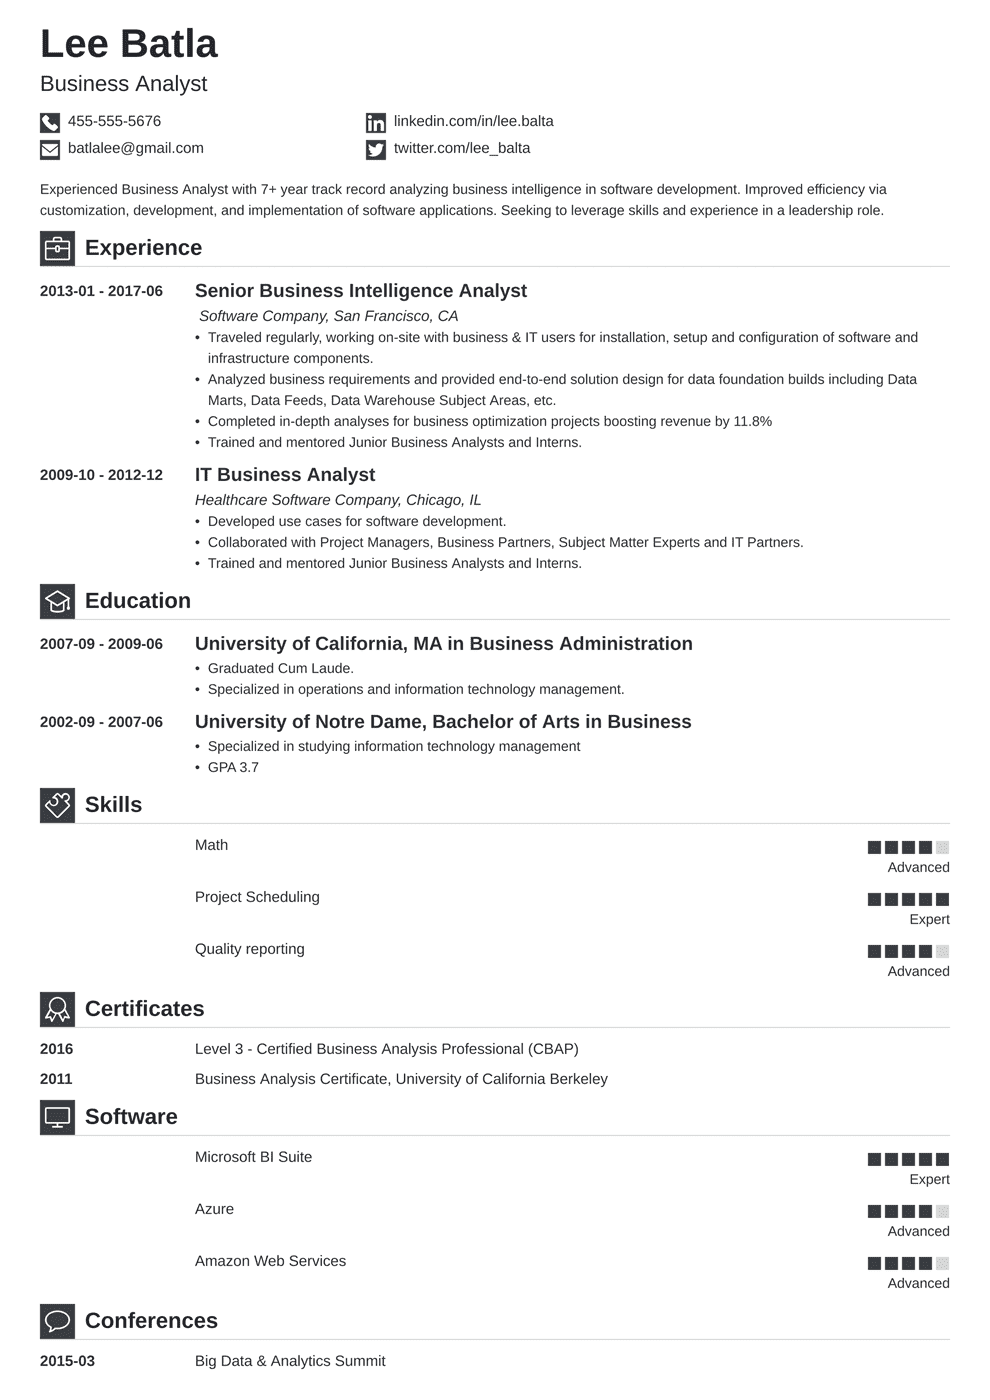 Business Analyst Resume Template Iconic Resume No Experience Engineering Resume Business Analyst Resume